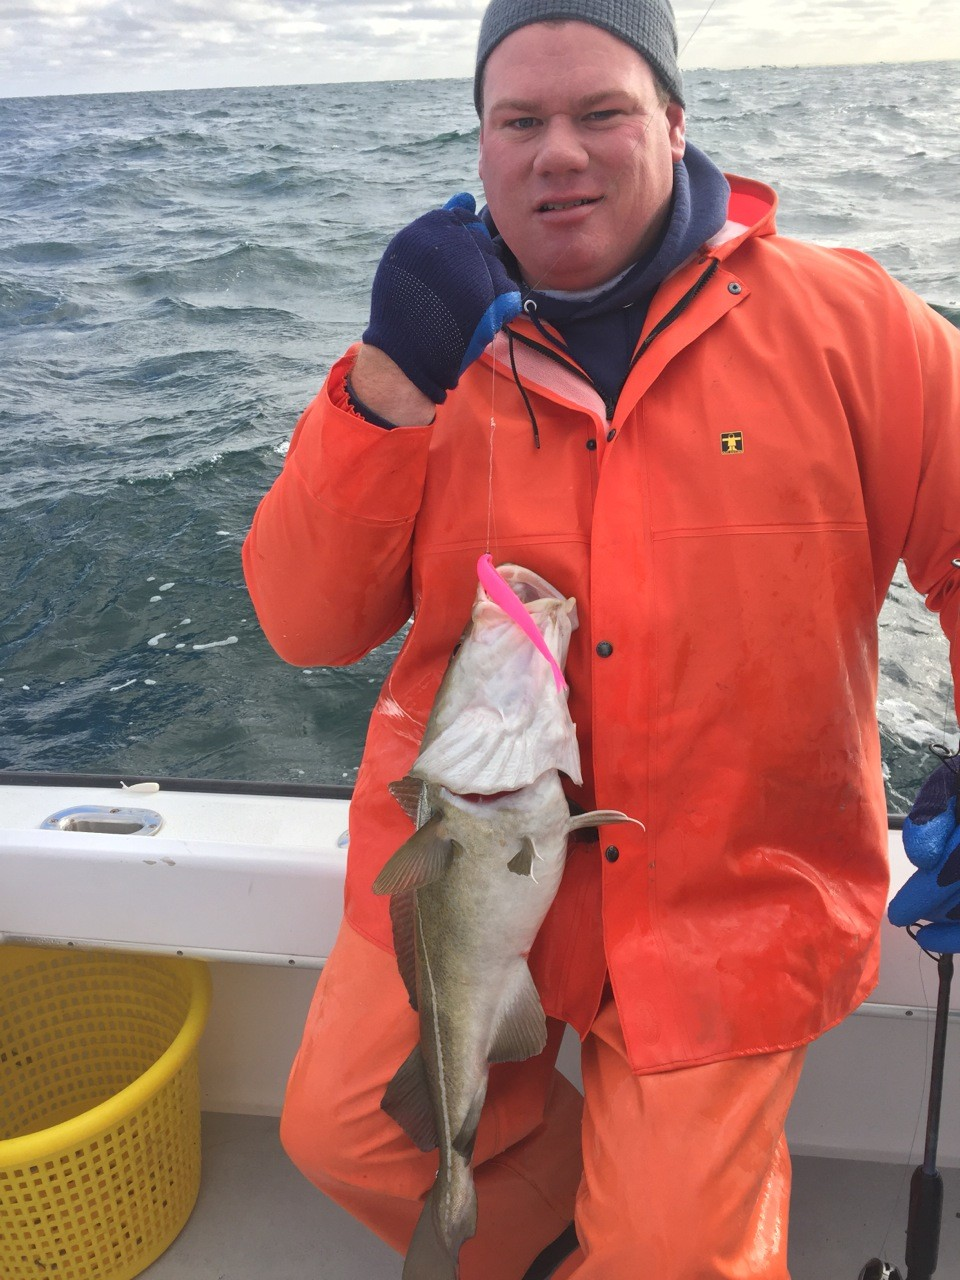 Capt. Shamus Mara of Big Game Charters with a cod caught south of Block Island.